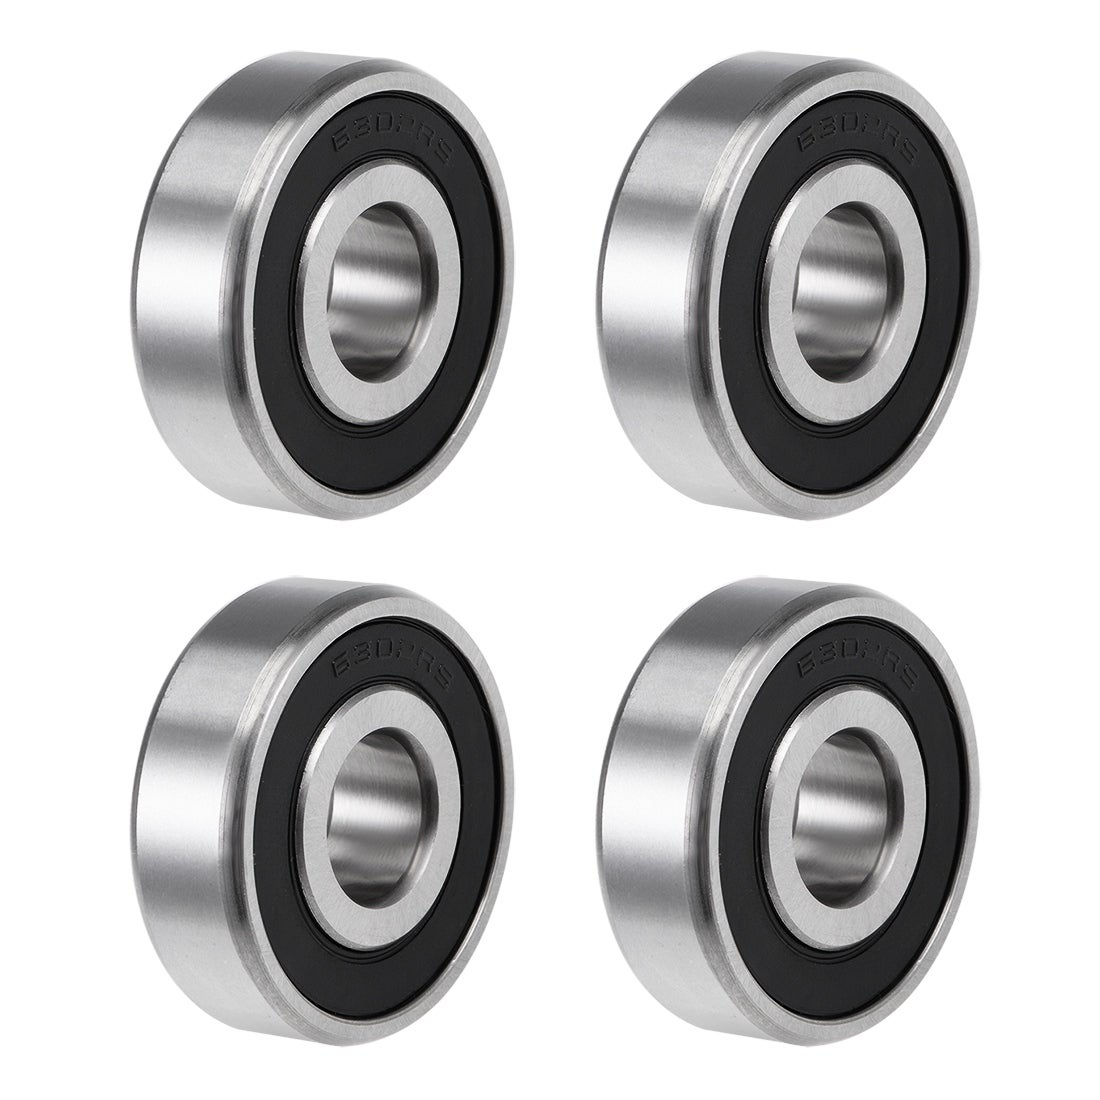 10 Ball Bearing Free Ship 6300-2RS RS 10mm Sealed